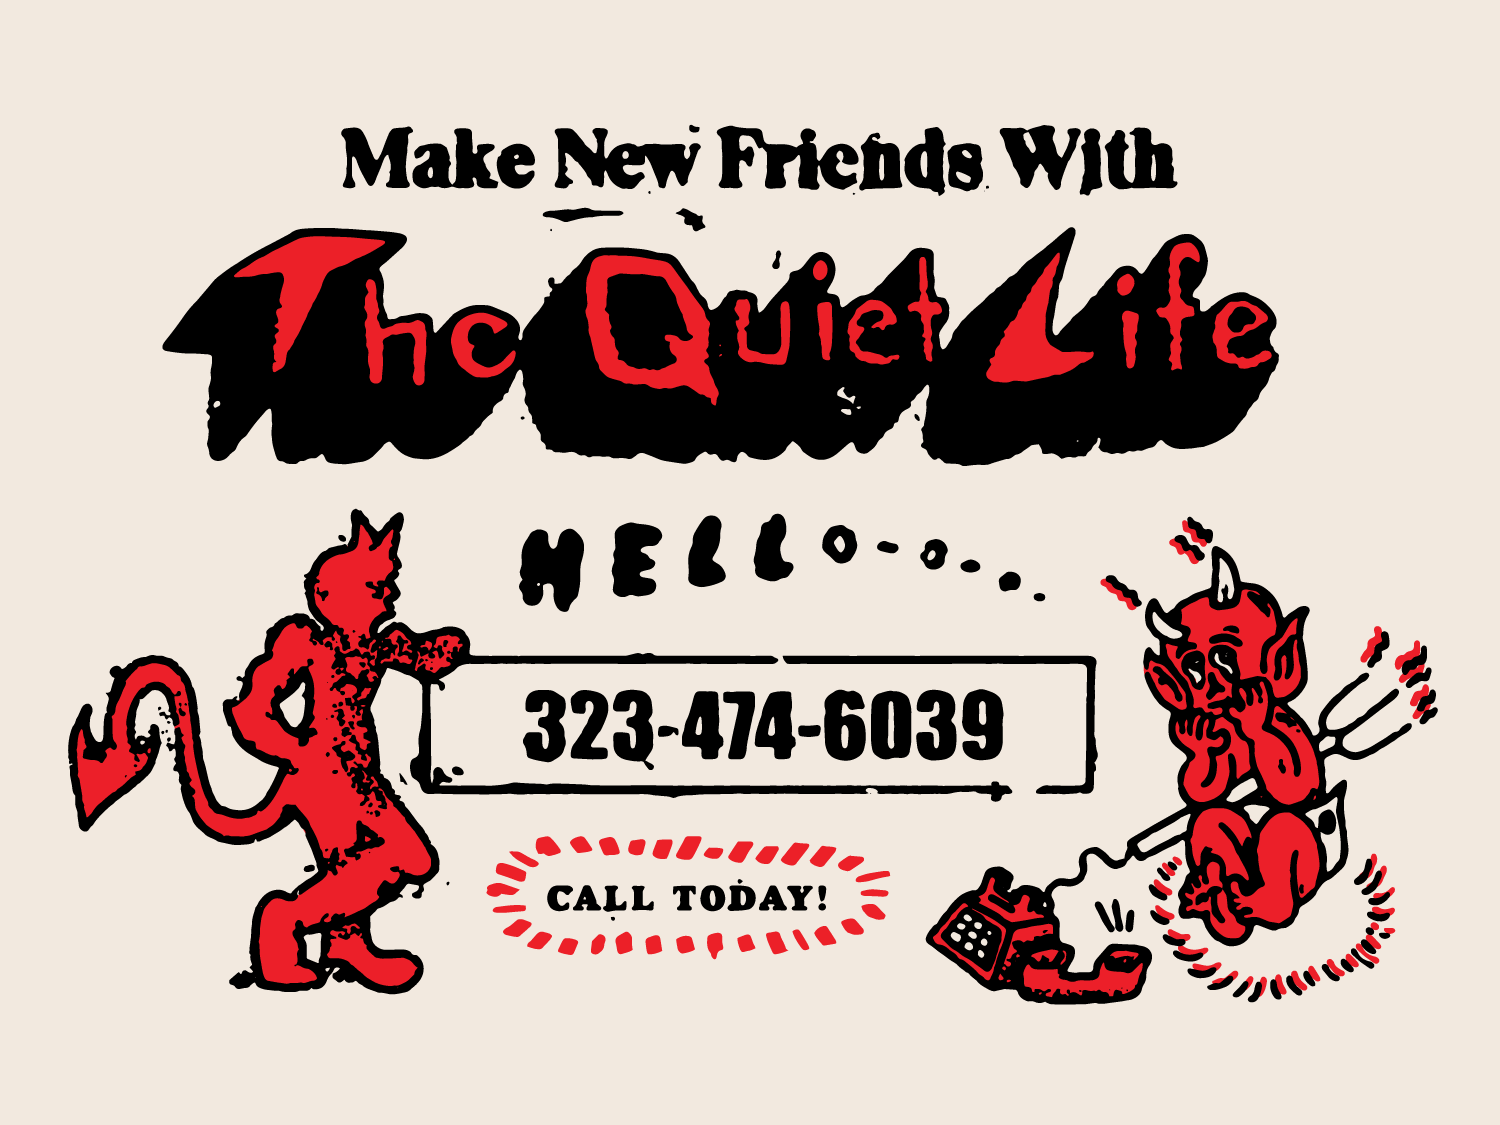 quiet-life-make-new-friends-1.png